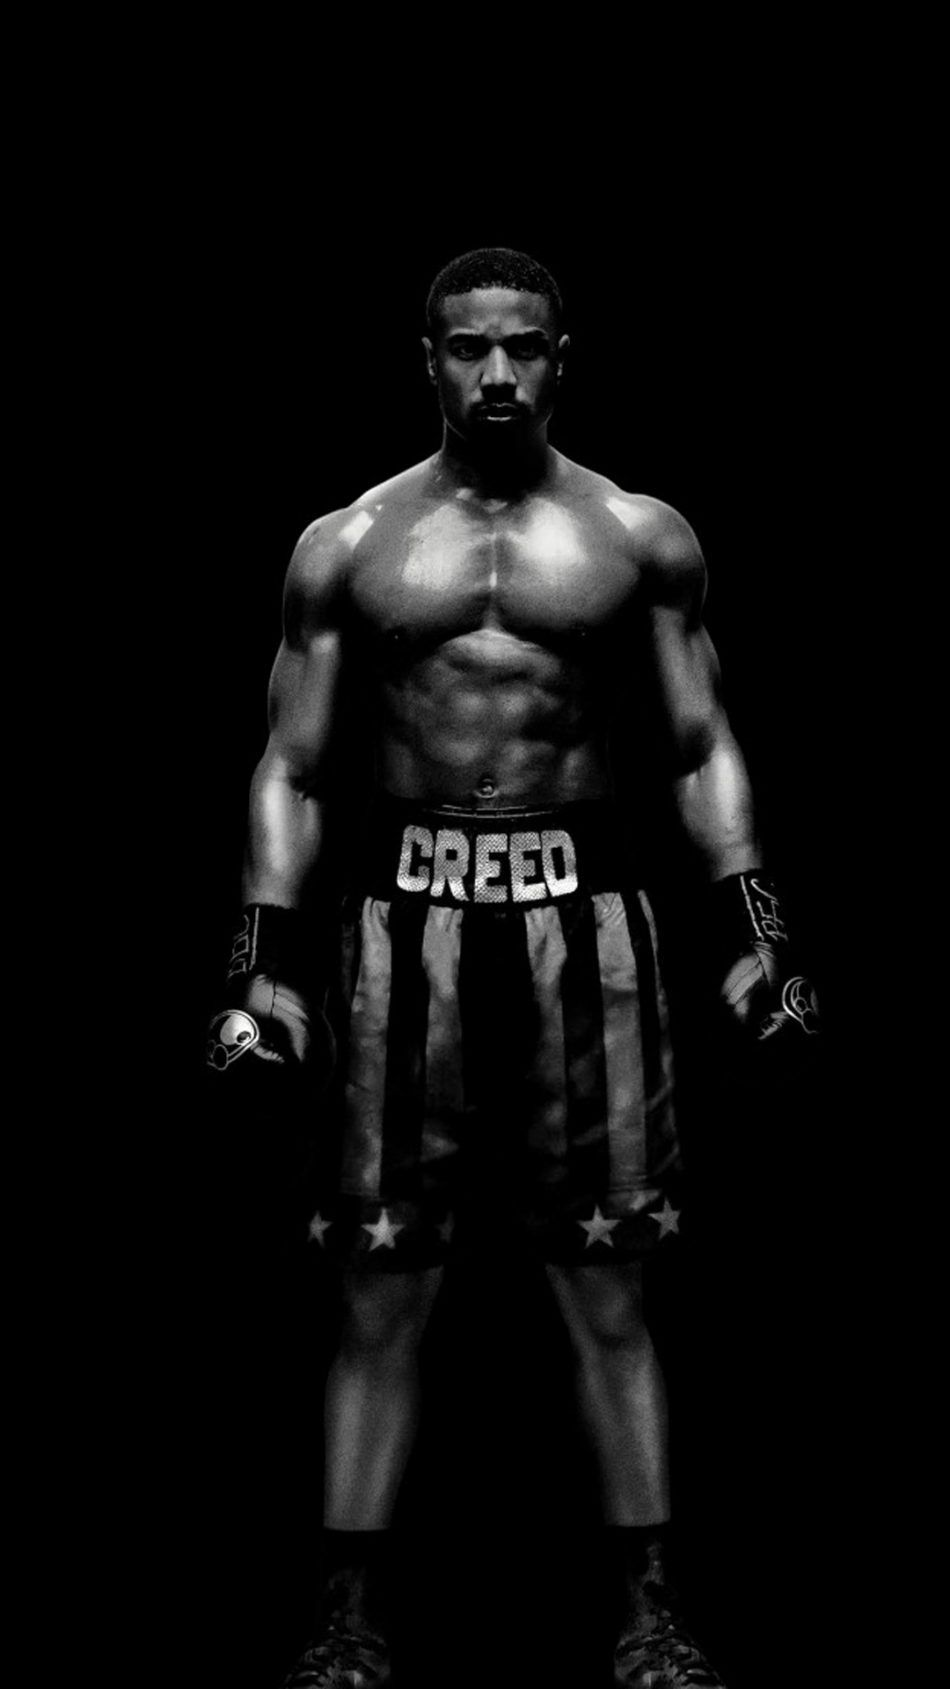 Michael B Jordan Creed Ii 4k Ultra Hd Mobile Wallpaper Michael B Jordan Creed Boxing Micheal B Jordan